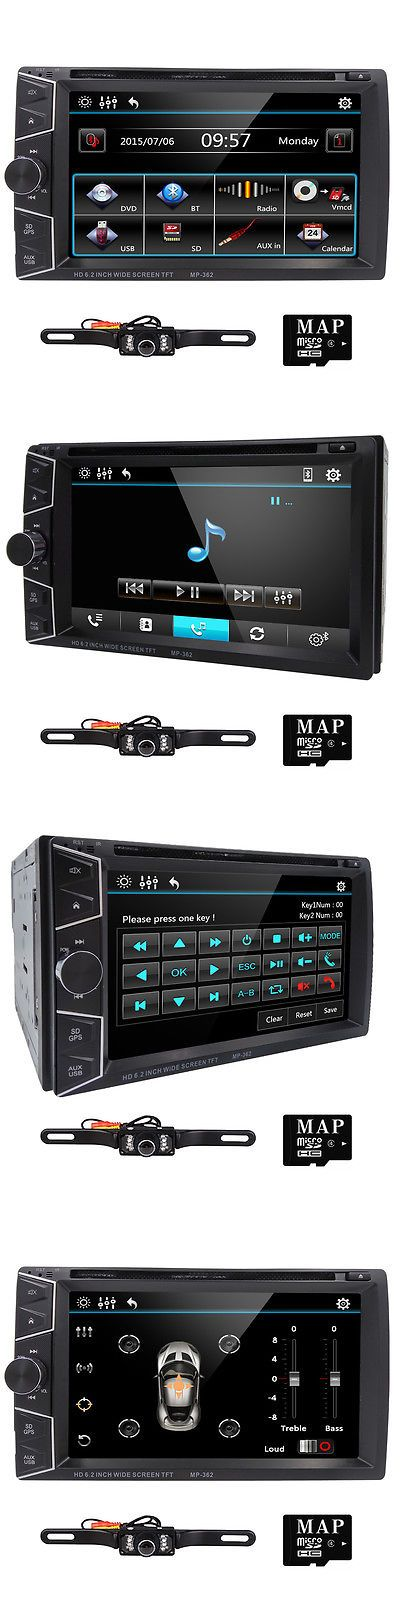 Vehicle Electronics And GPS: Camera+6.2 2 Double Din Car Dvd Player Gps Navigation Bluetooth Radio Stereo -> BUY IT NOW ONLY: $119.99 on eBay!